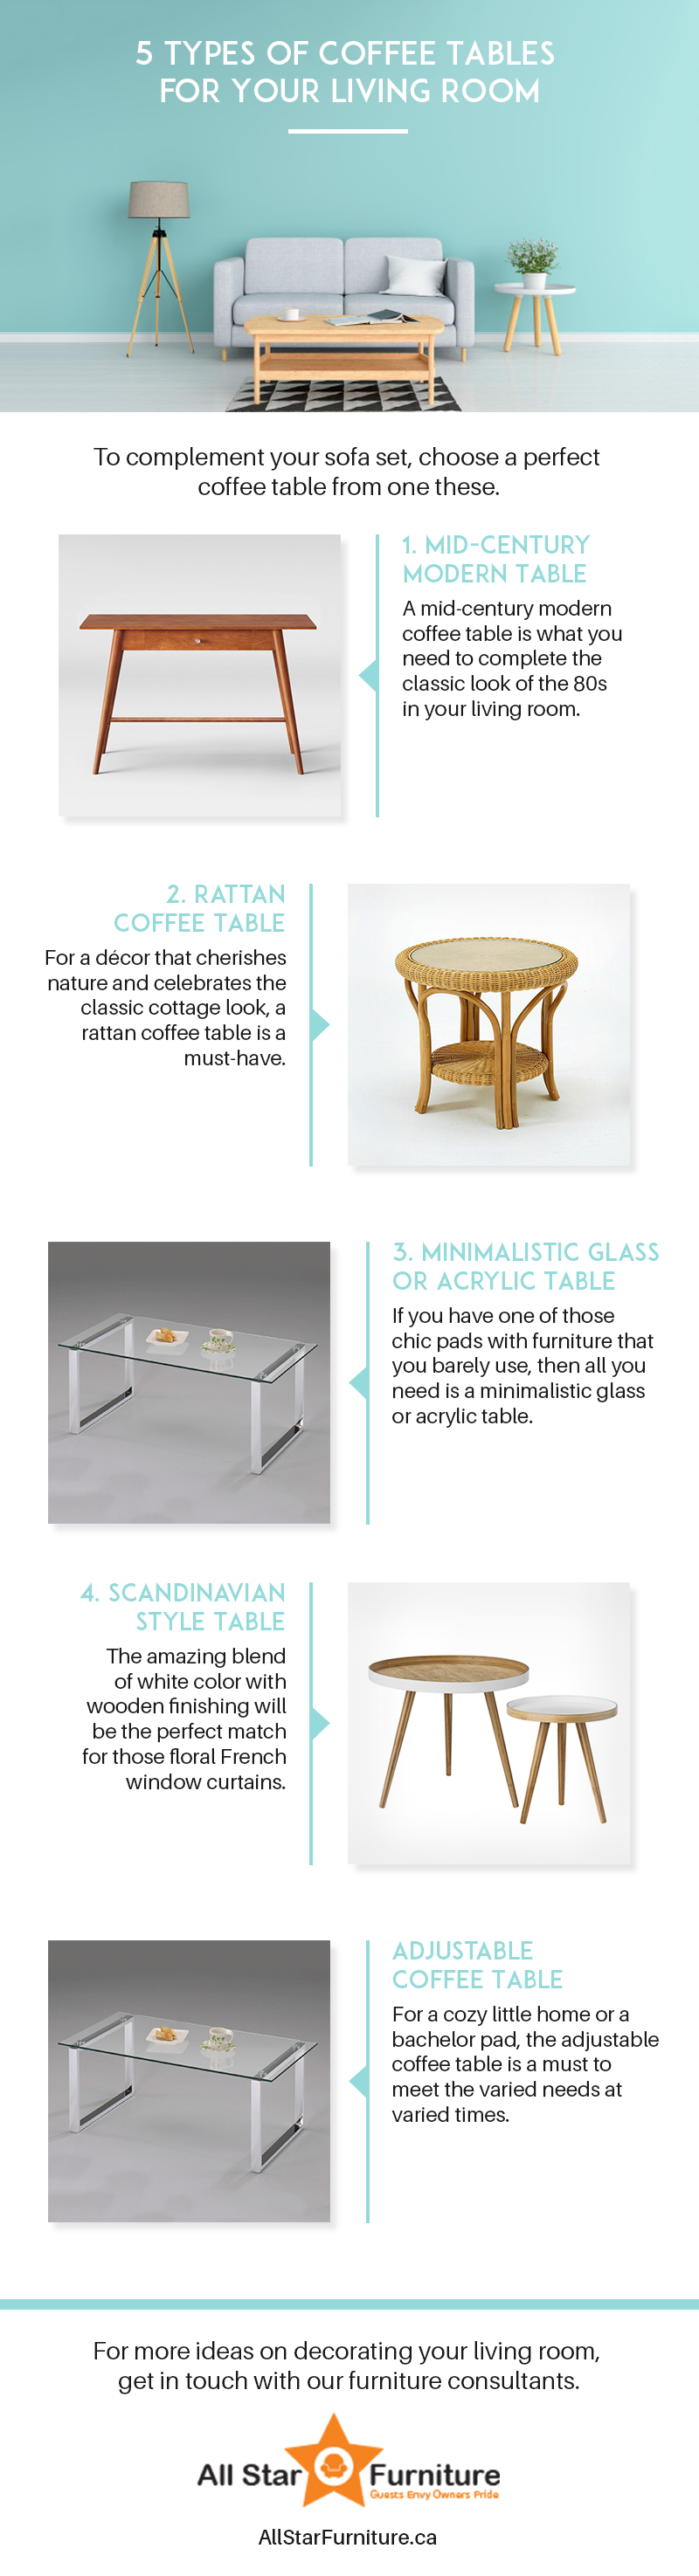 5 Types of Coffee Tables for your Living Room